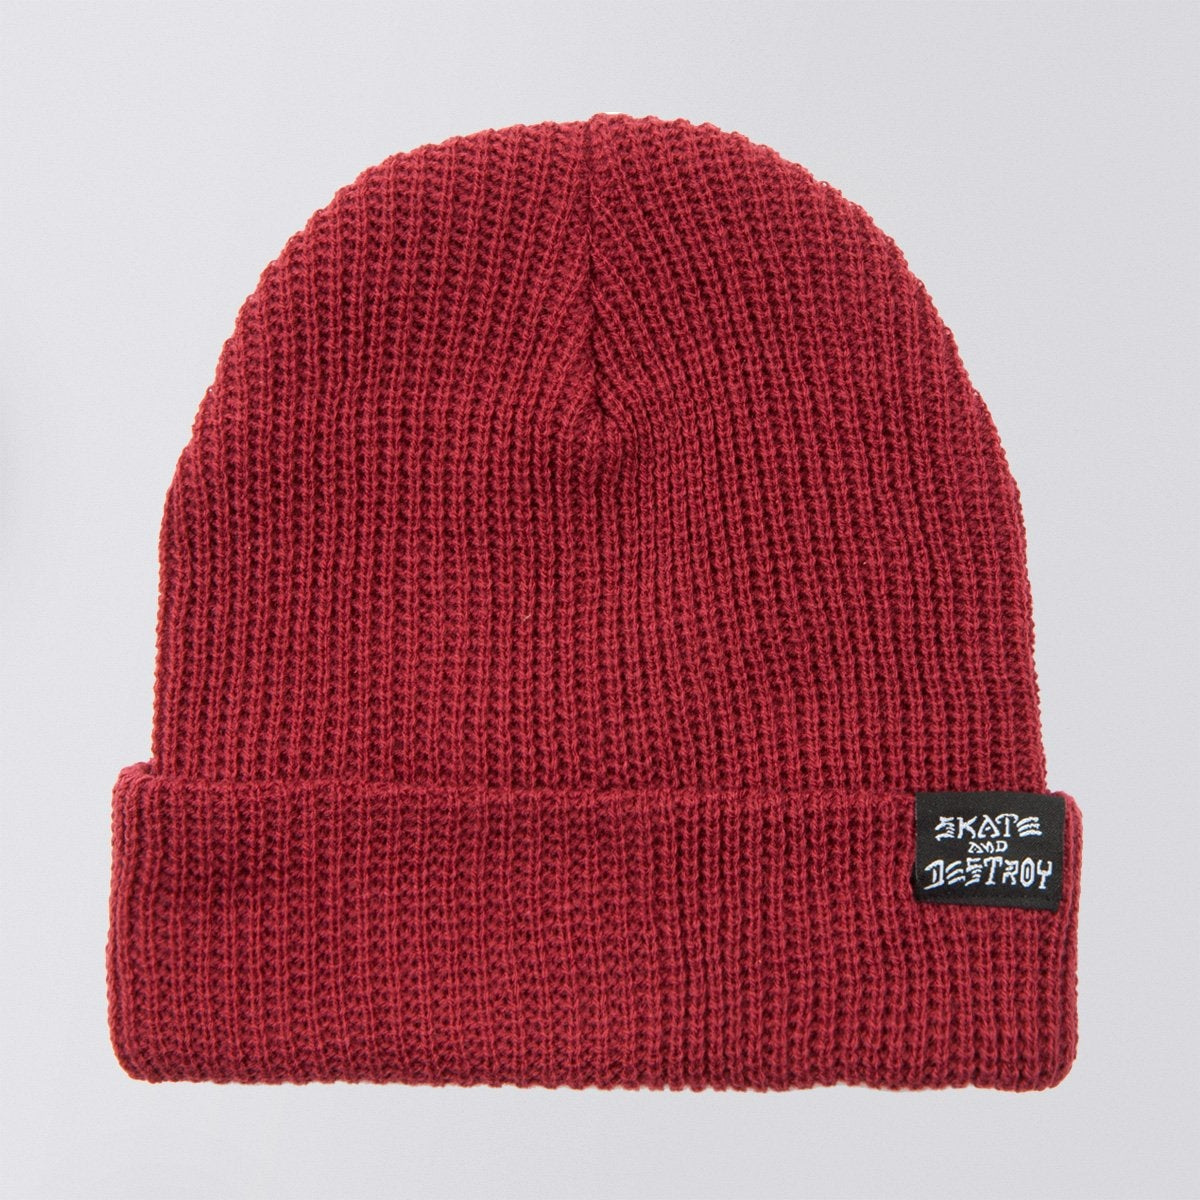 Thrasher Skate Goat And Destroy Beanie Maroon Red - Accessories